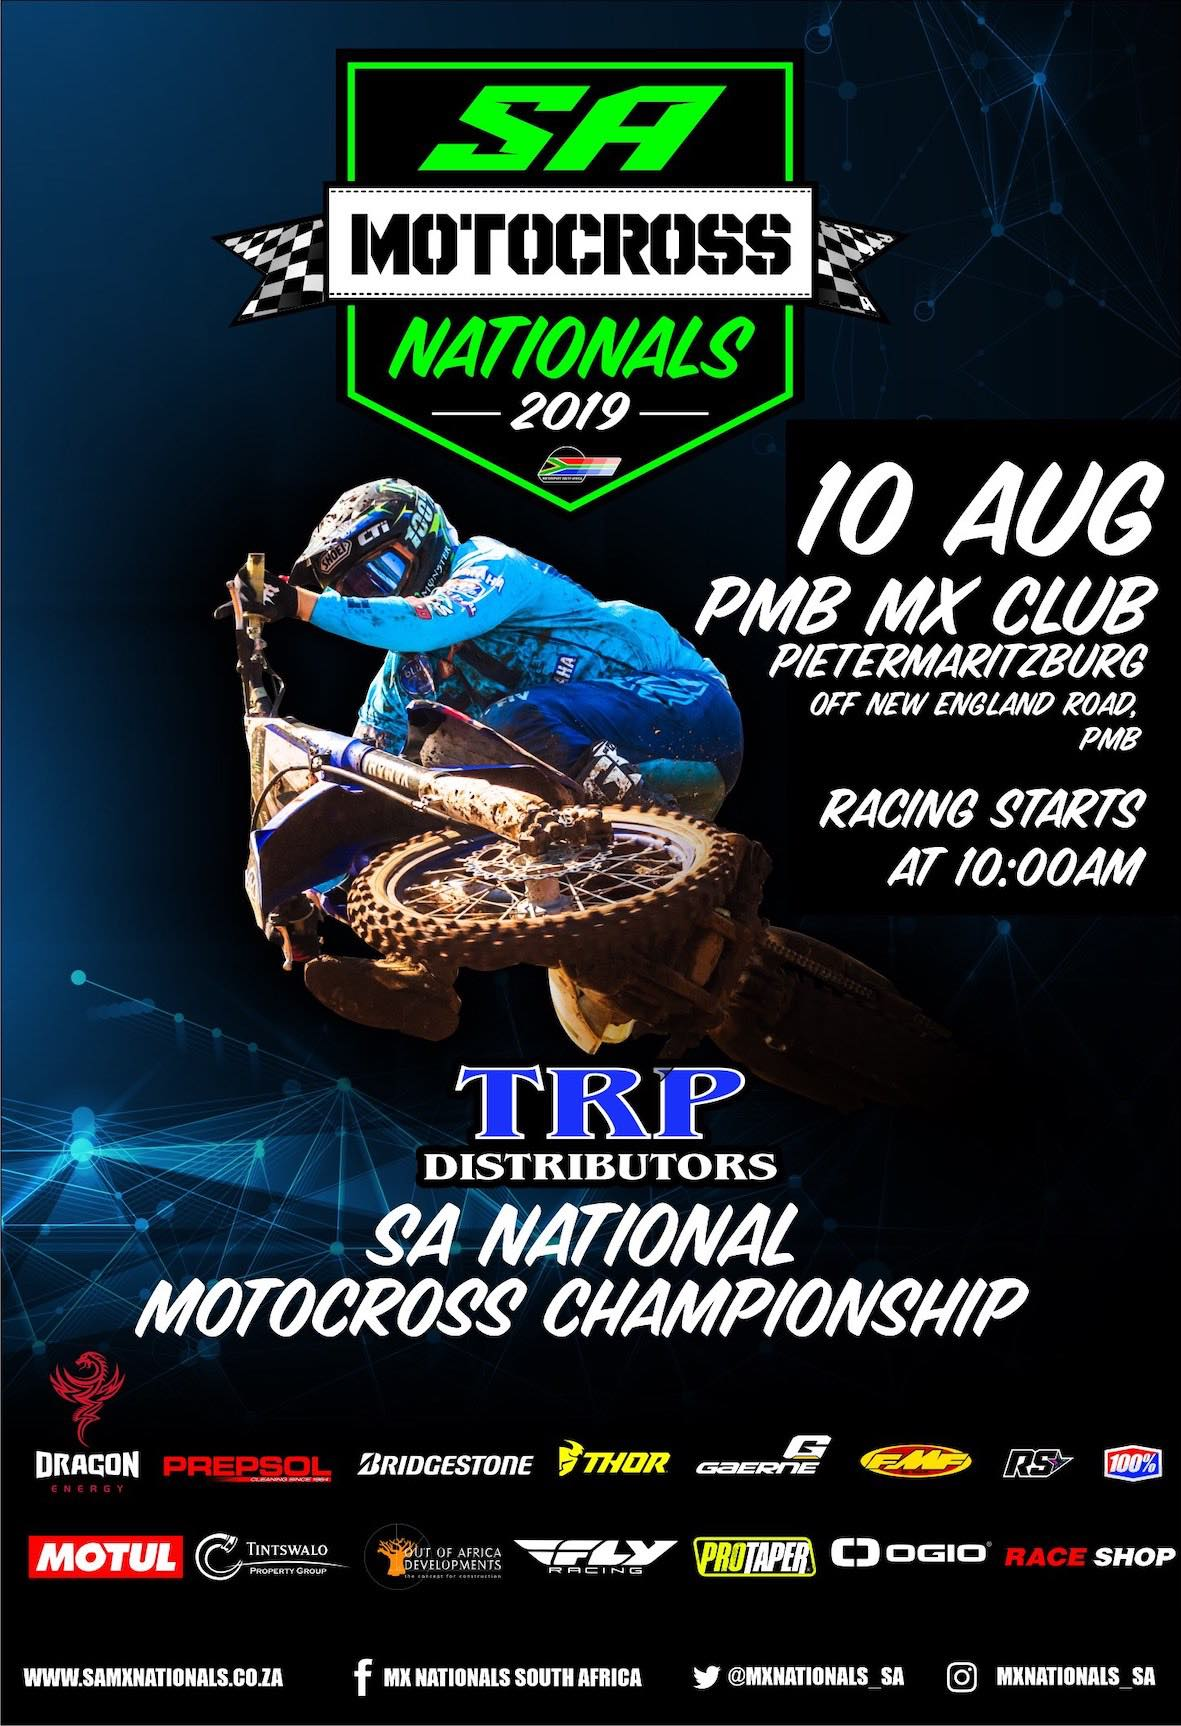 Details for Round 5 of the 2019TRP Distributors South African National Motocross Championshiptaking place at the PMB MX Club in Pietermaritzburg